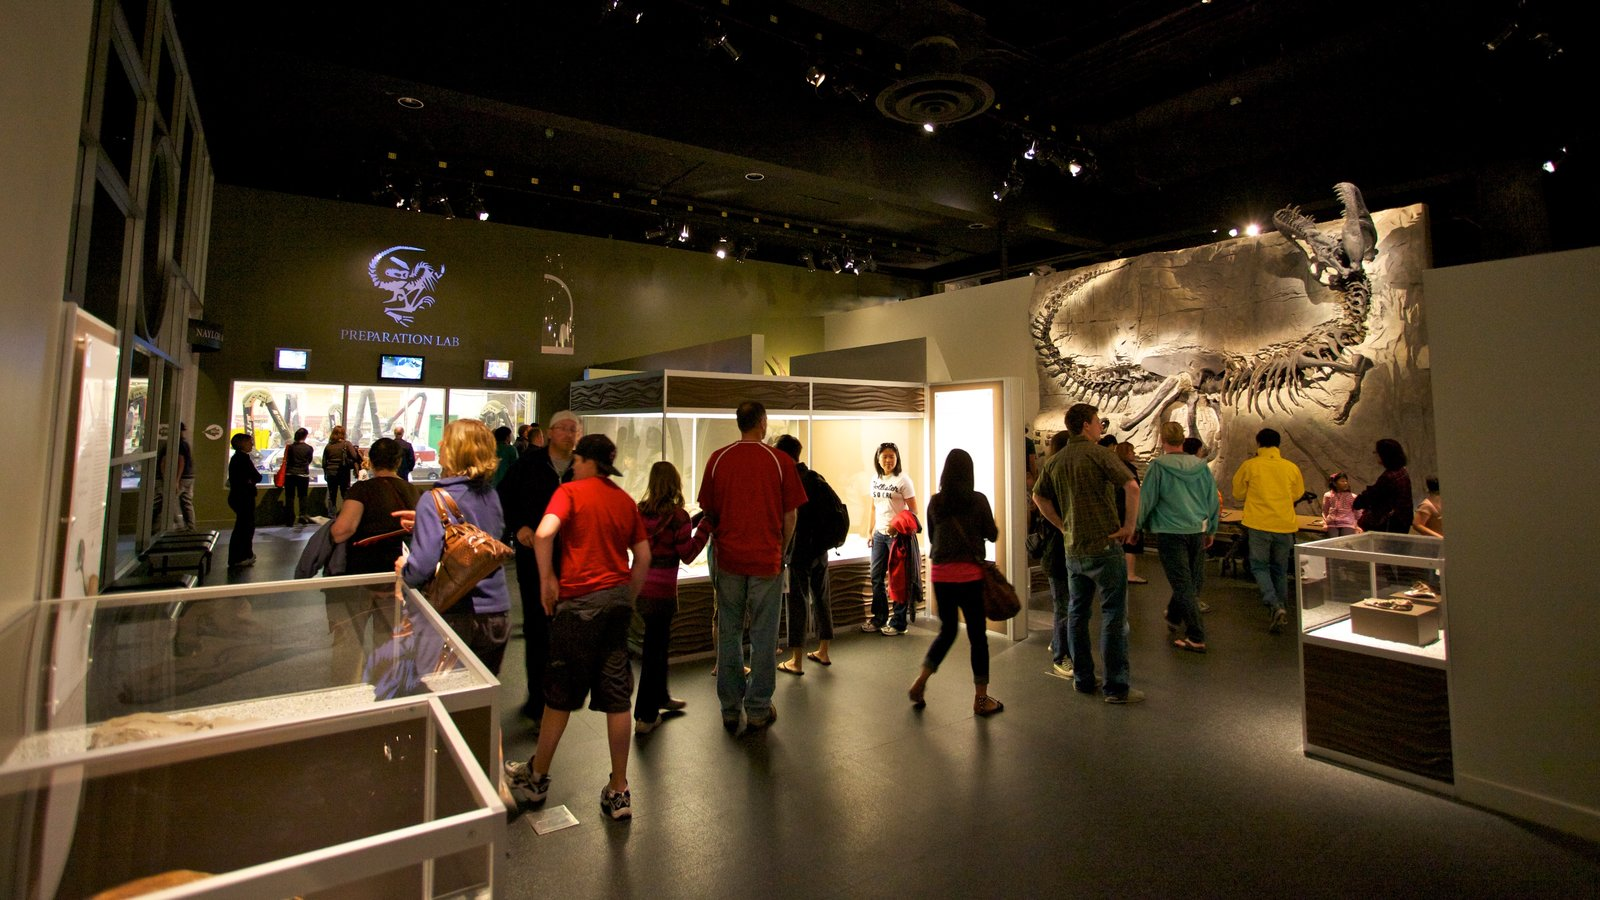 Royal Tyrrell Museum featuring interior views as well as a large group of people